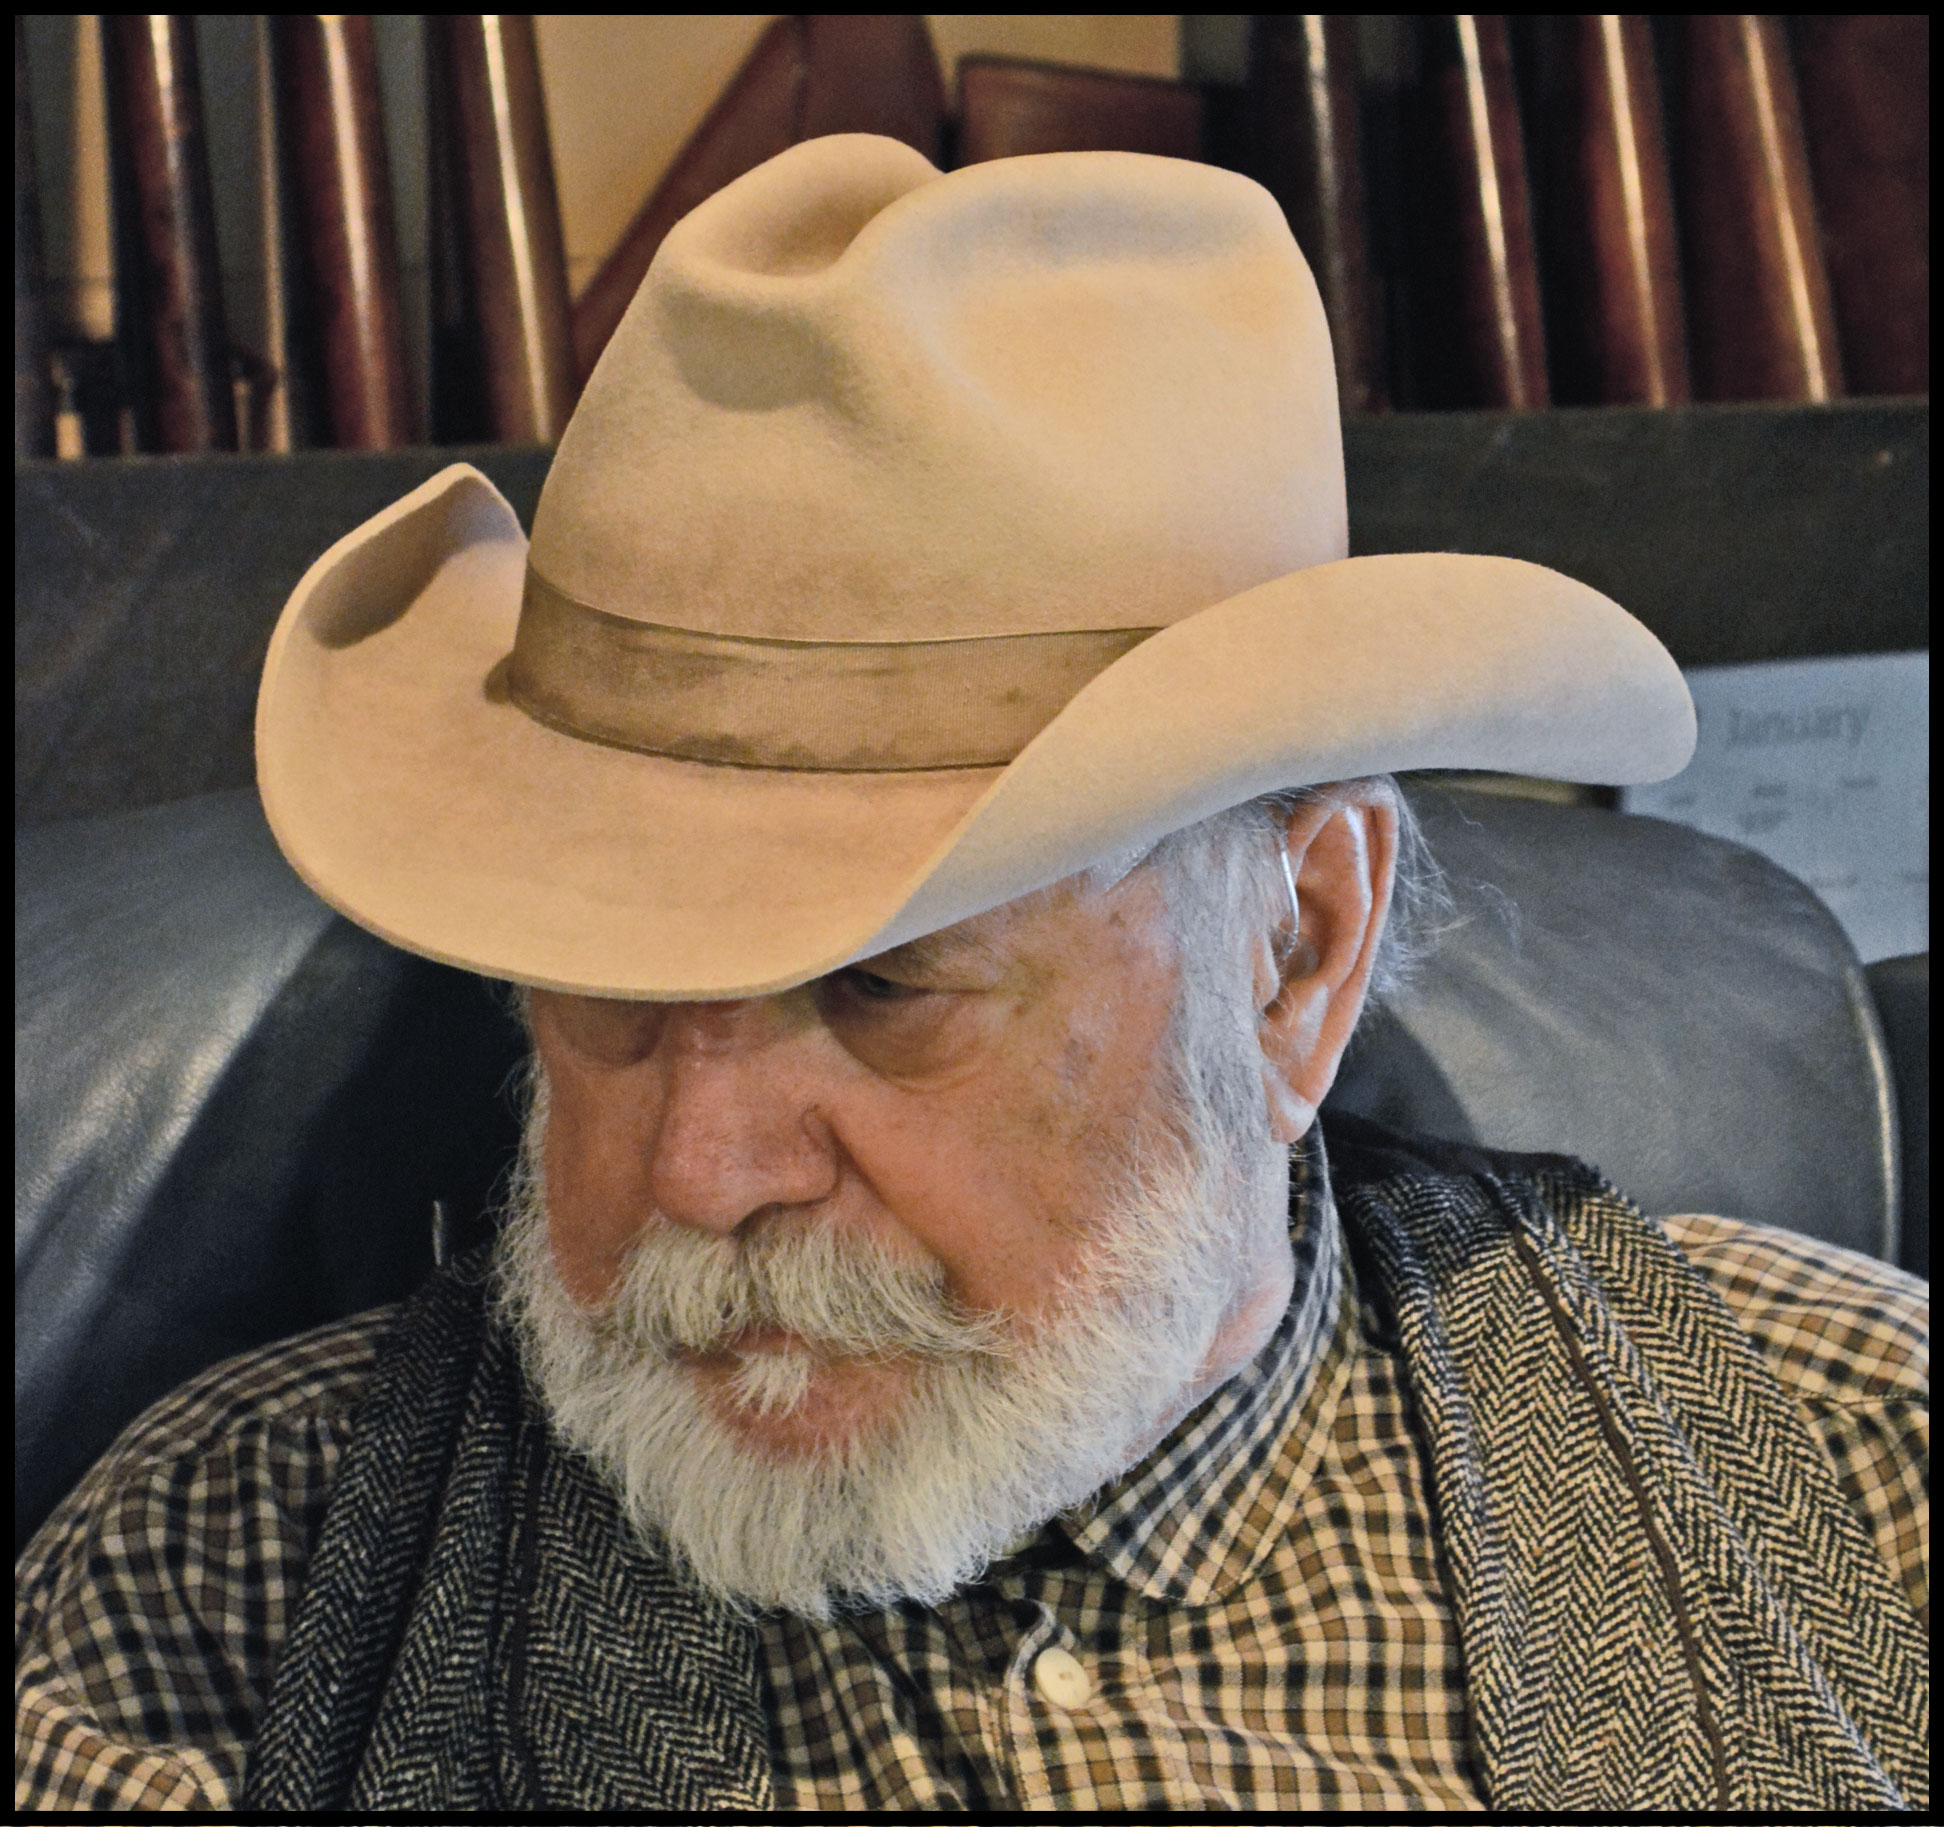 c517bf39de0df Glen Ford Hat Style featuring a 4 1 2 inch finished crown and a 3 1 4 in.  unbound brim - Click to Enlarge Image